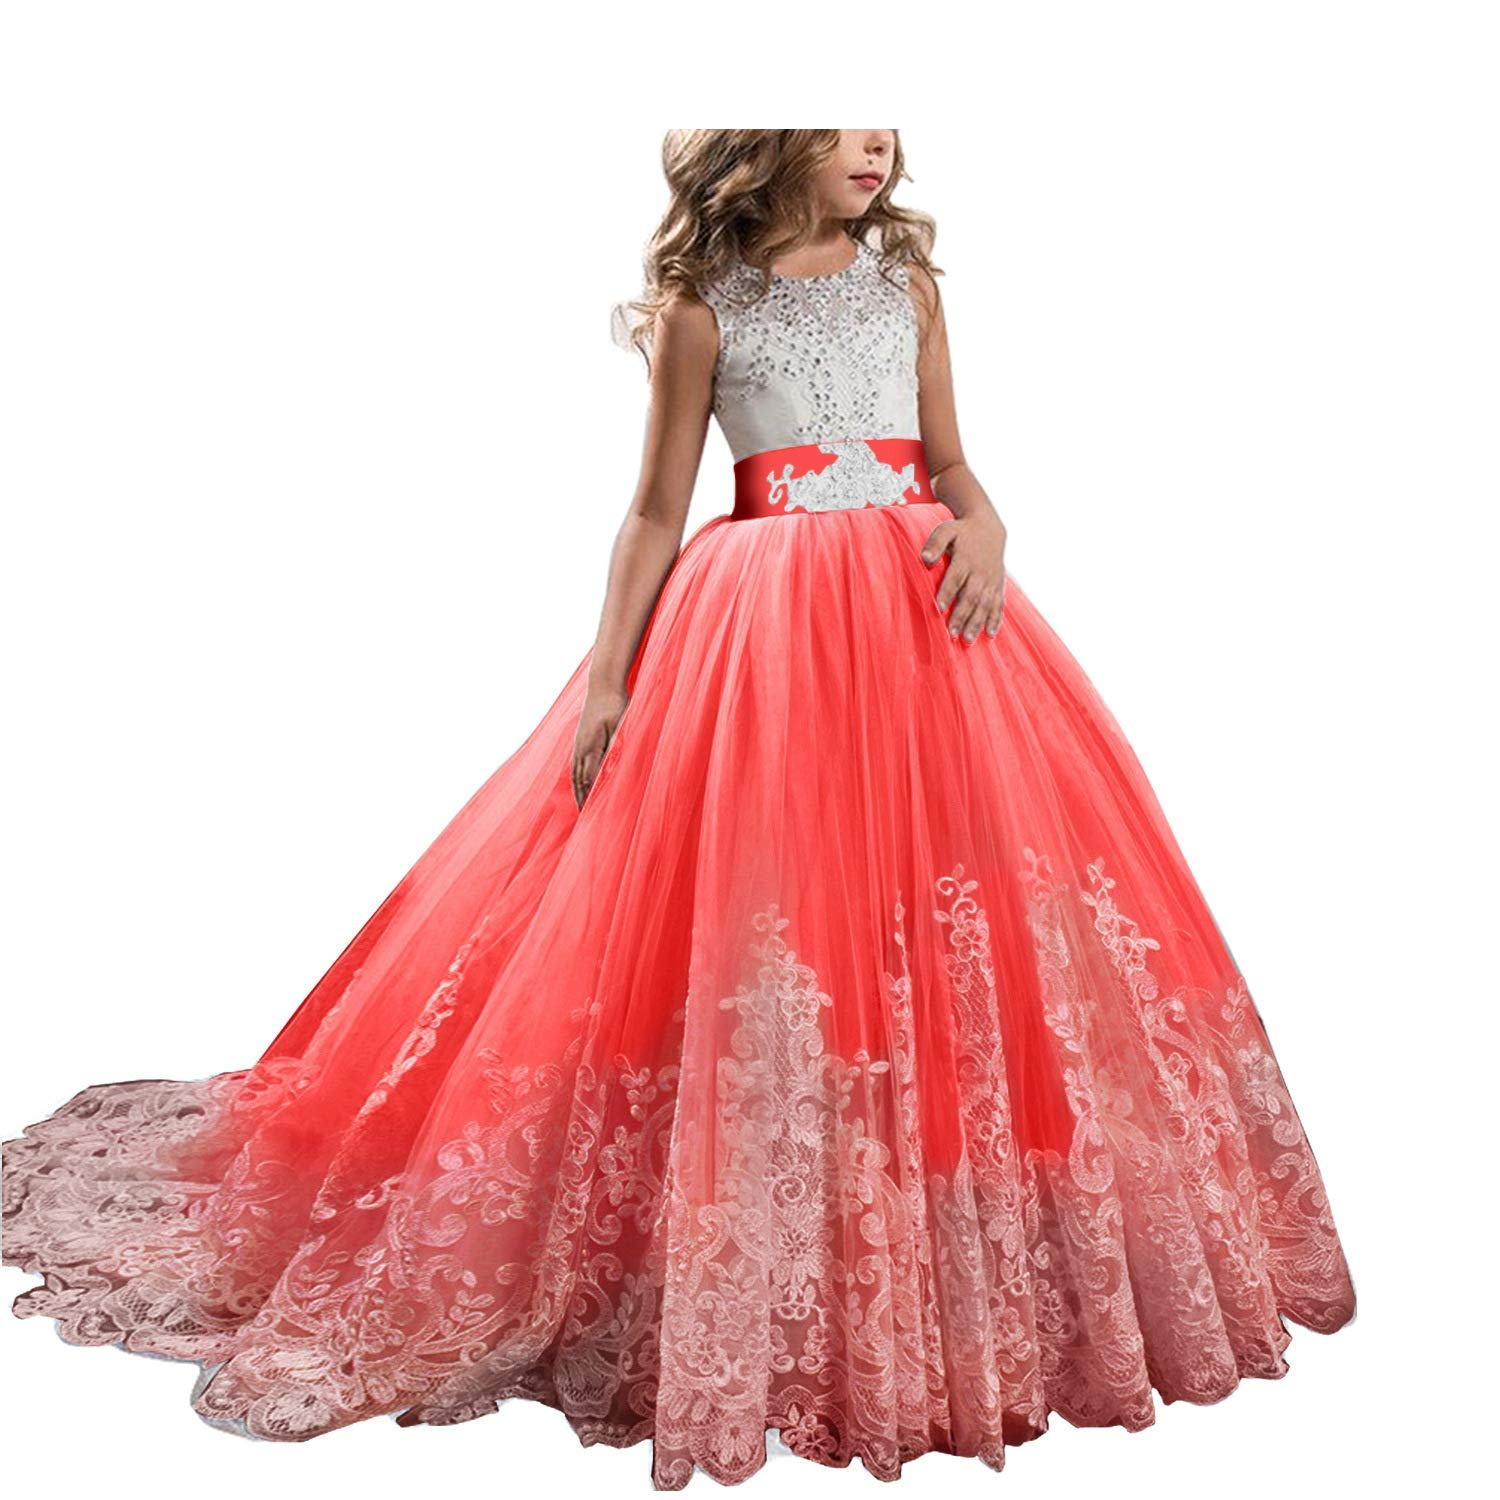 fecb2ef1e Amazon.com: Childrens Dresses High-Grade Lace Girls Flowers Party Costume  for Kids Girl Pageant Dance Ball Gown Prom Birthday Dress,Red,8: Kitchen &  Dining